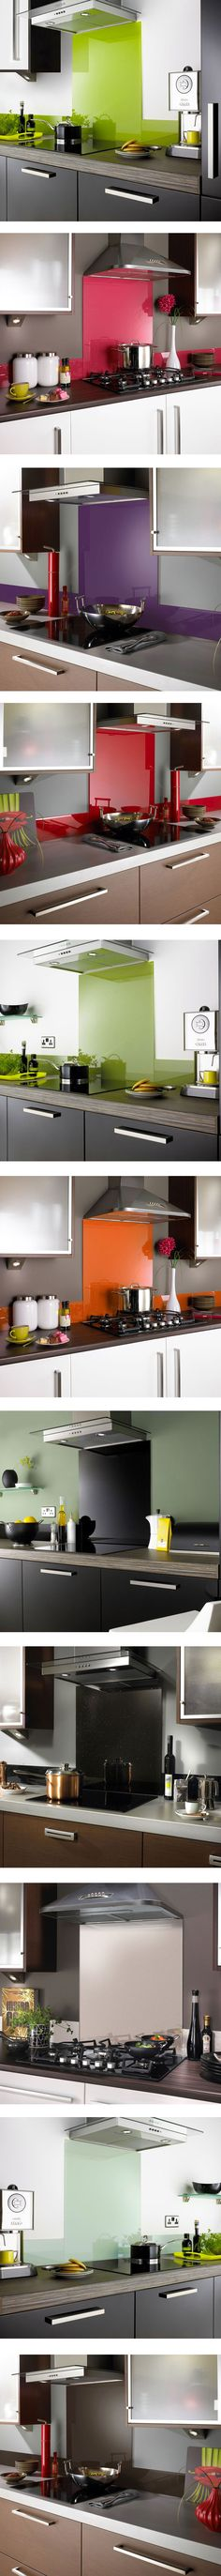 Splashbacks! An exciting new range of glass kitchen splashbacks in a spectrum of striking colours and designs to add a bright and unique finish to your kitchen and cooking area. Bold colours to shimmering metalilics and eye-catching sparkles!